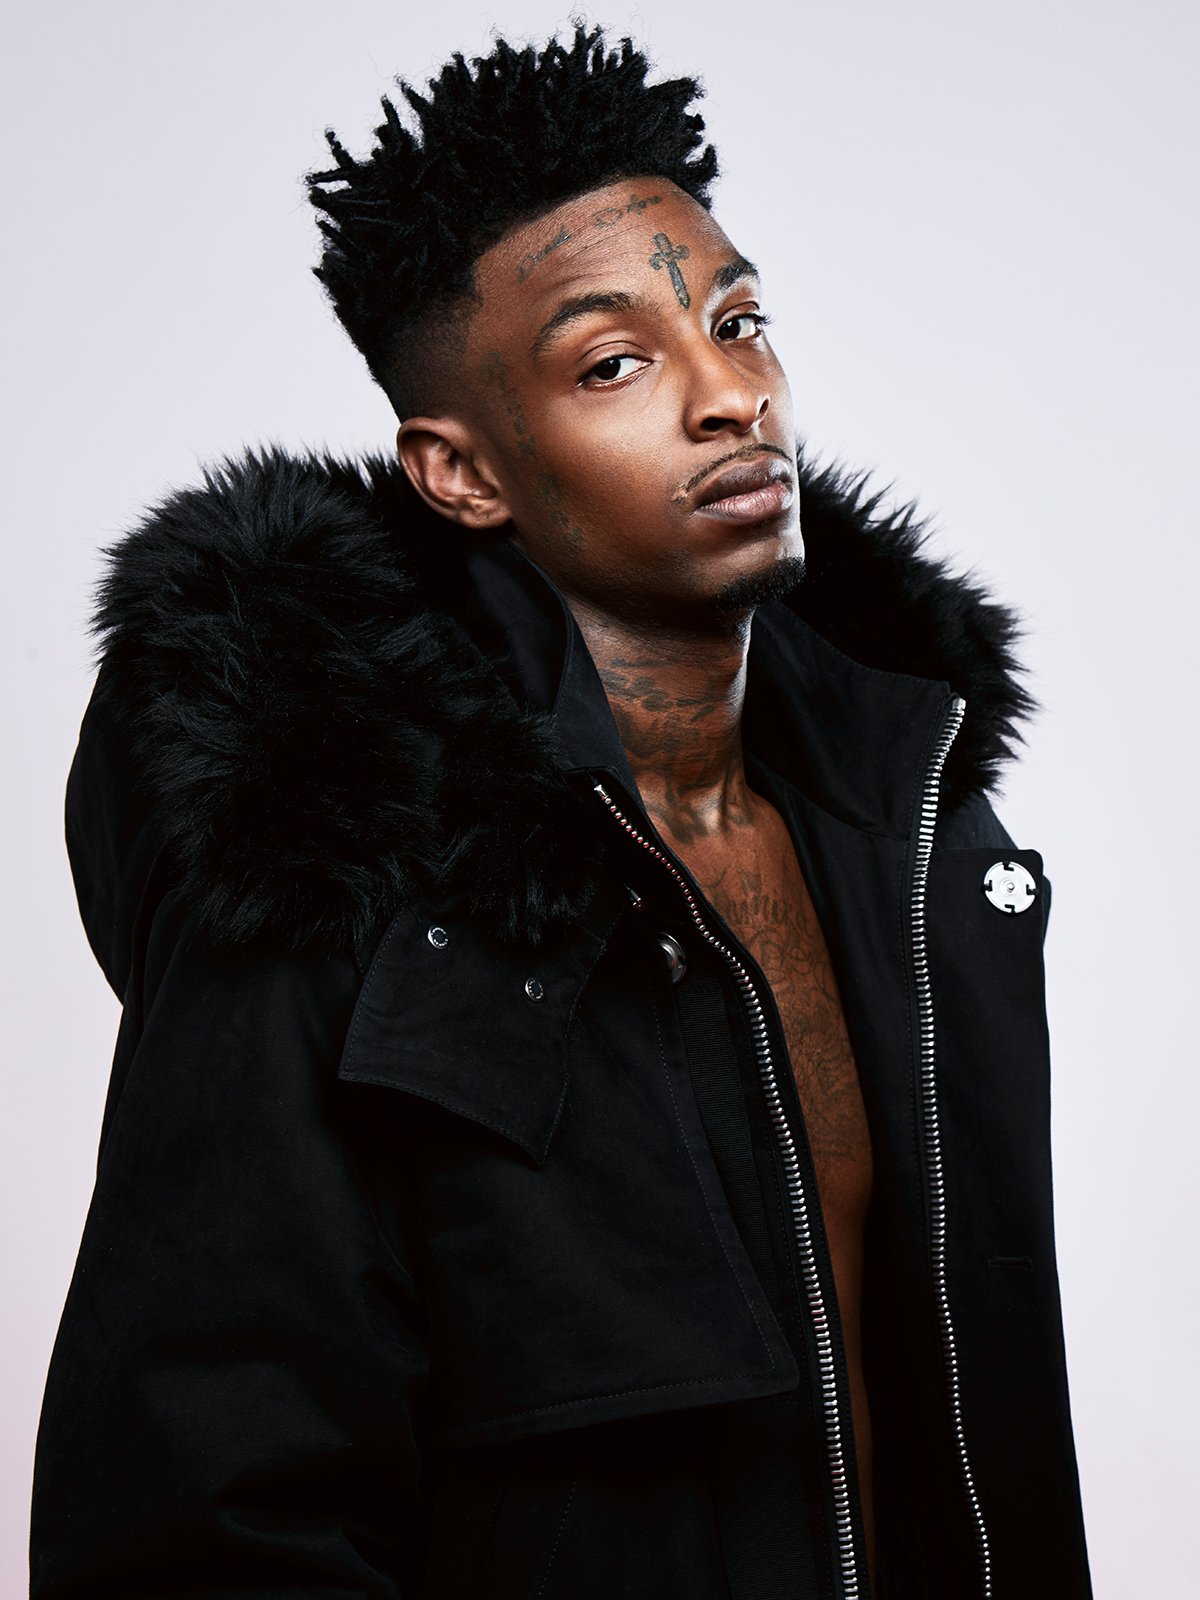 21 savage - photo #2